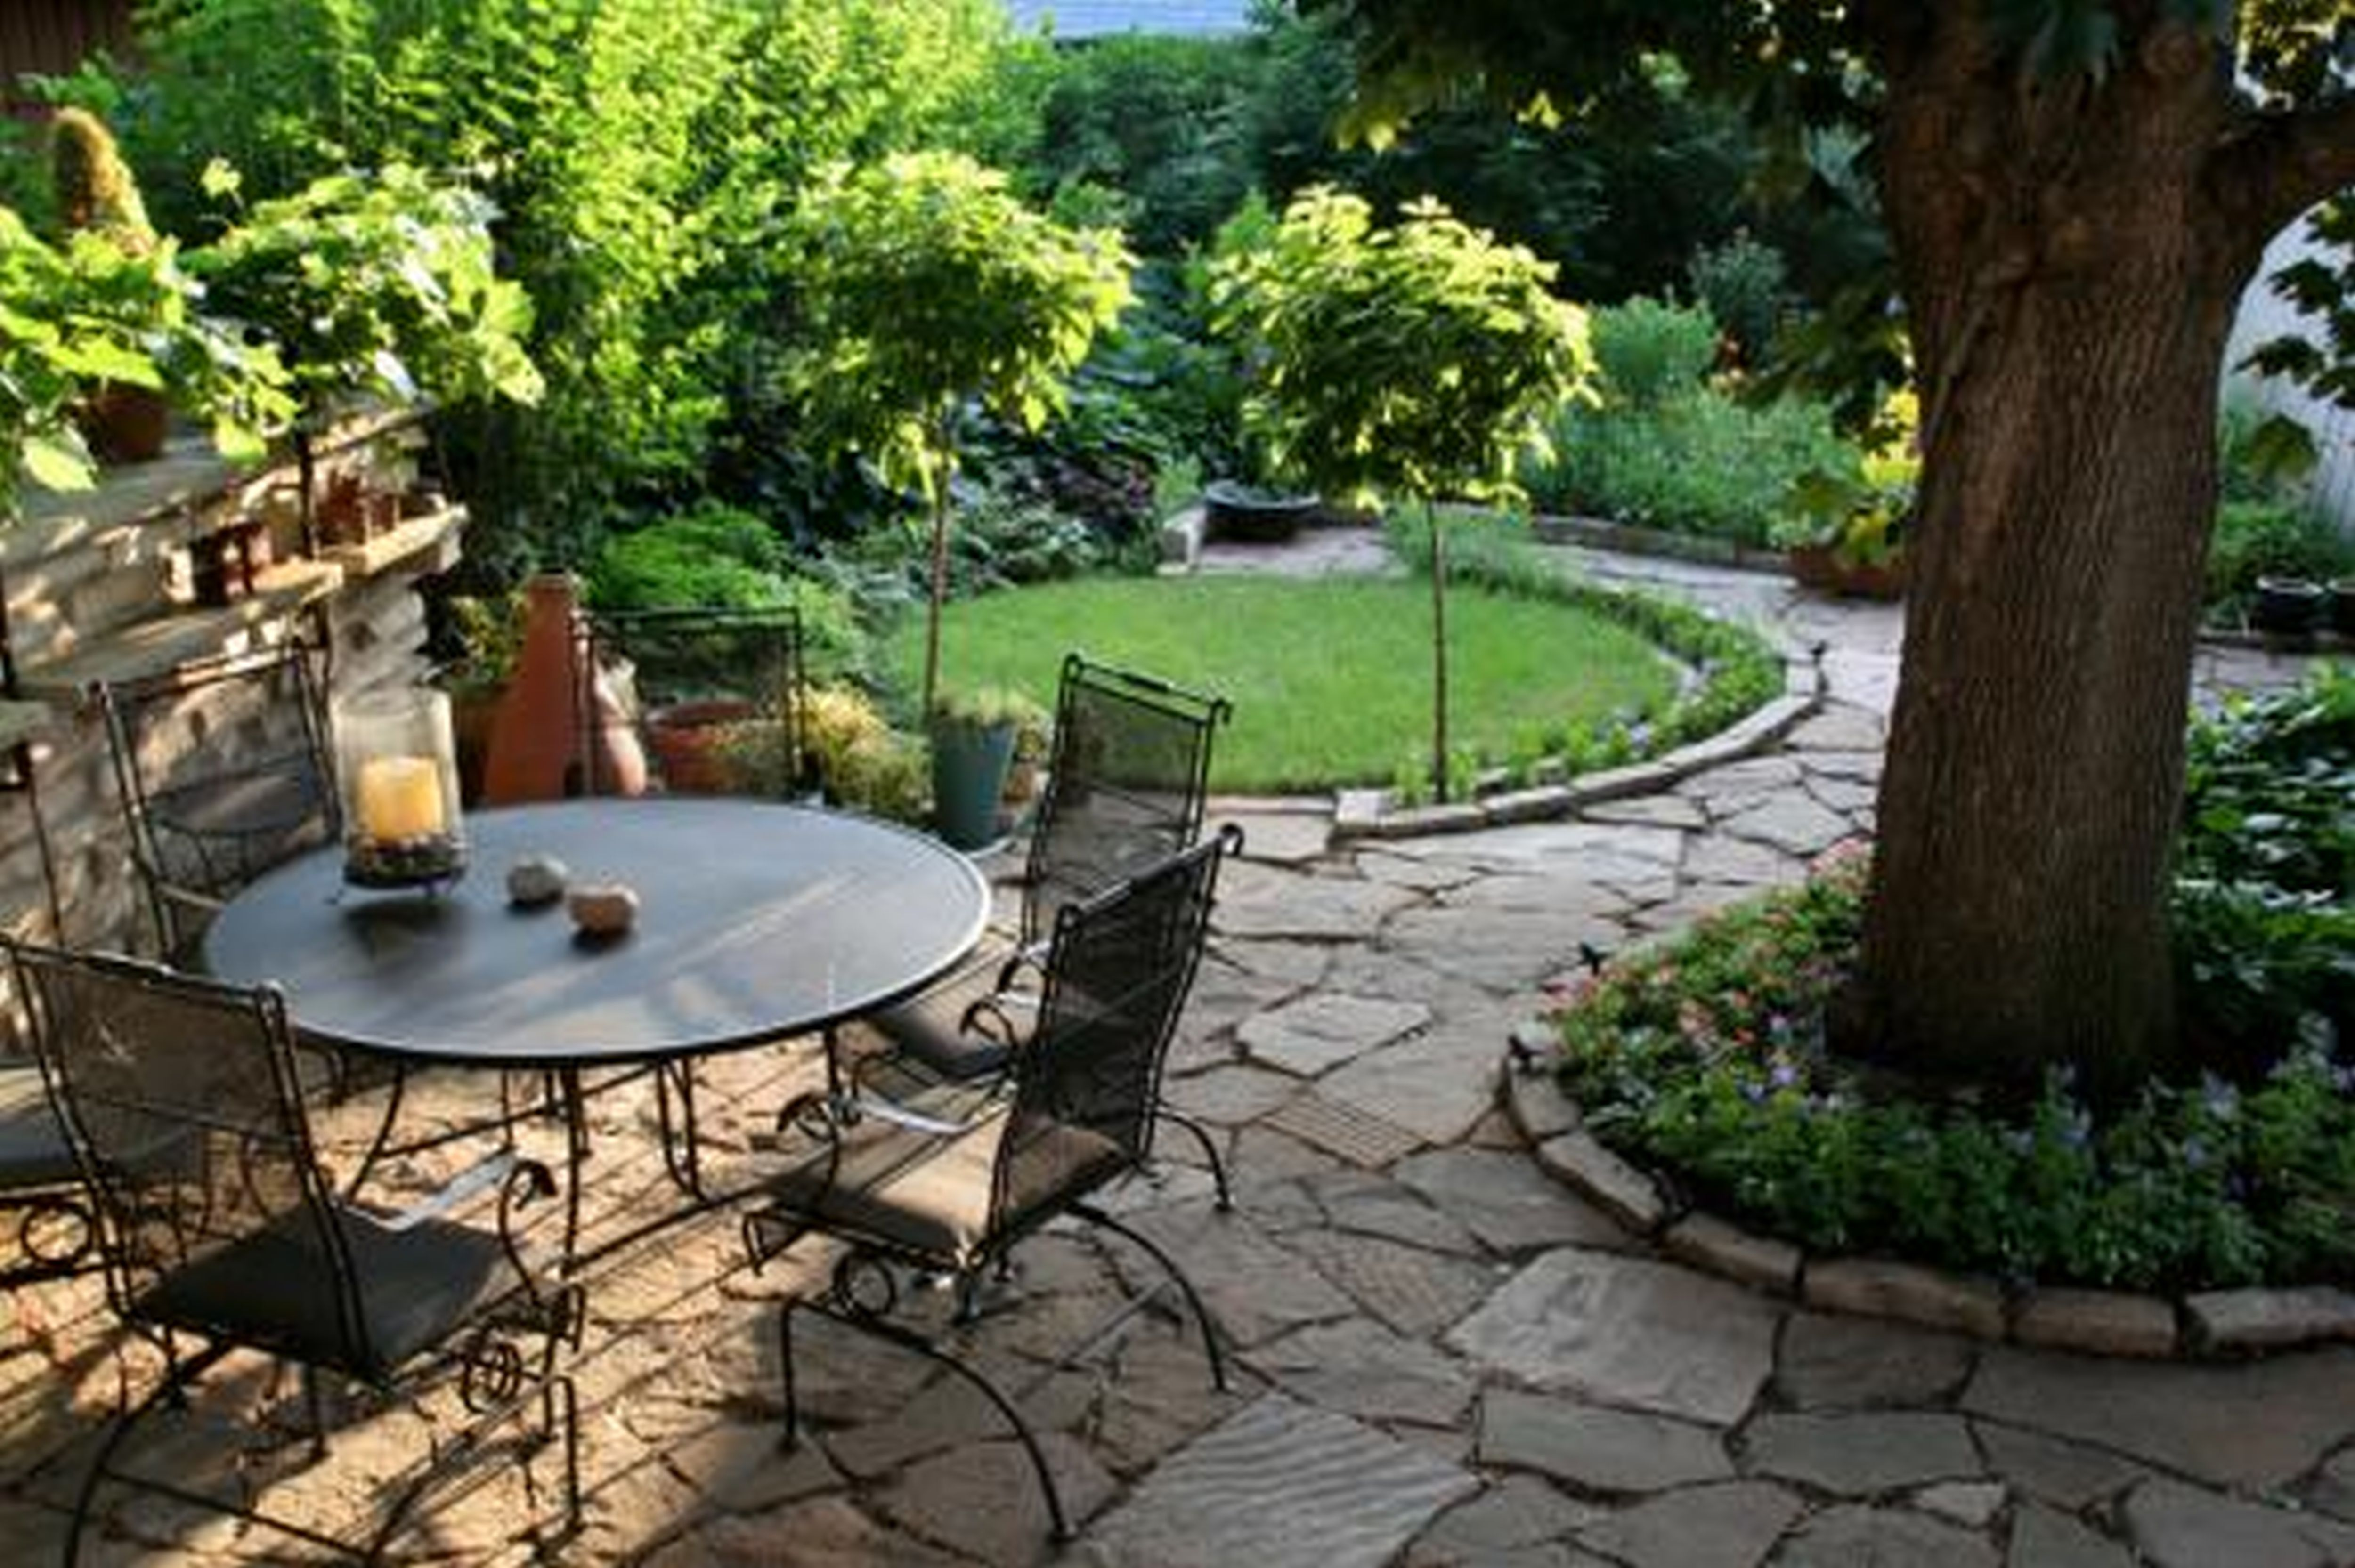 Garden, Dainty Small Garden Ideas Frontyard And Backyard Inspirations:  Inspiring Small Yard Landscaping Ideas With Small Patio Design And Rounded  Outdoor ...